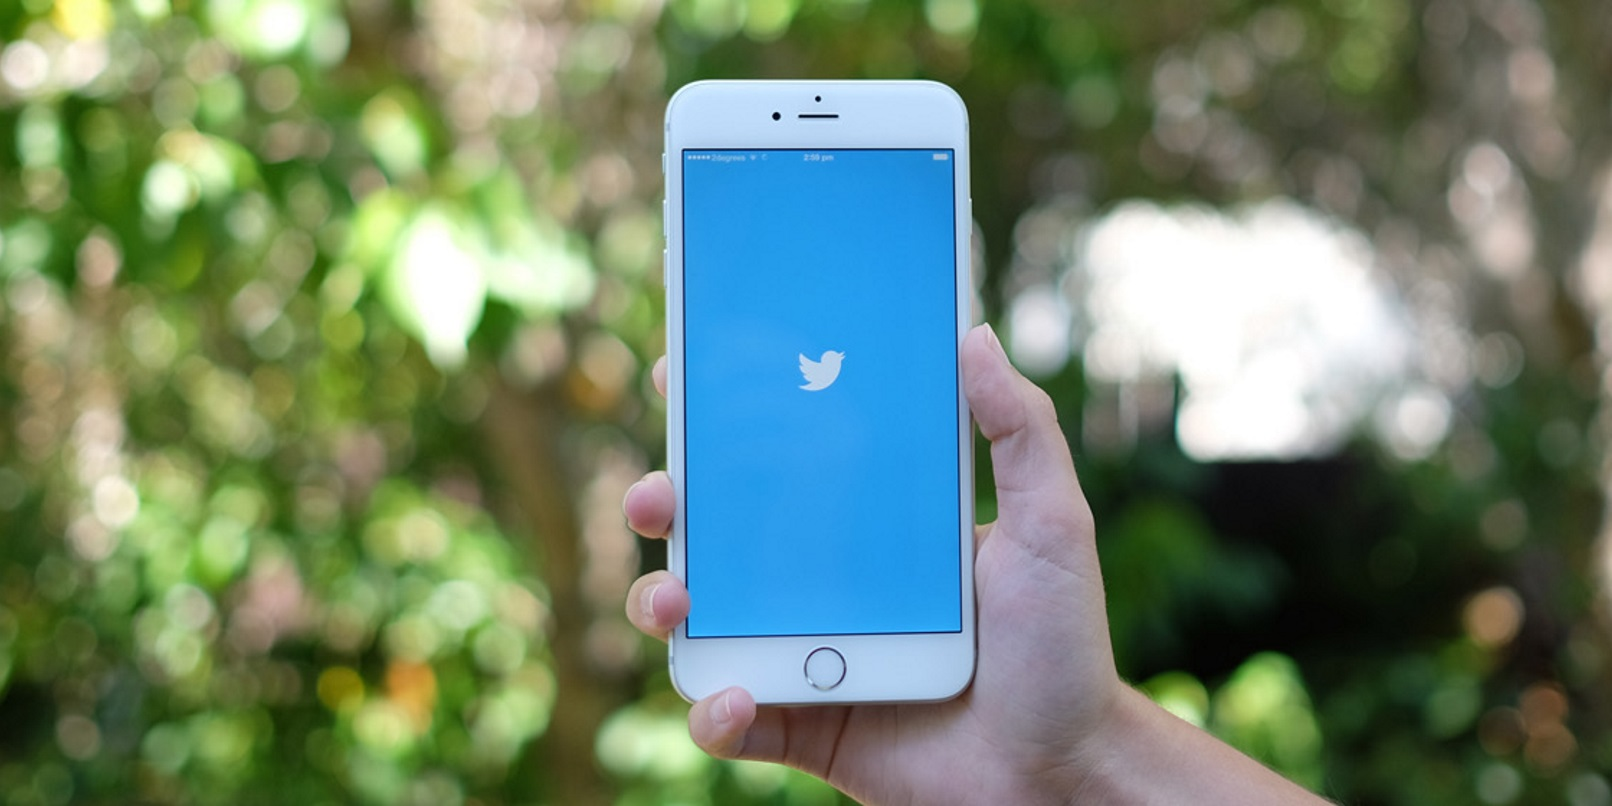 Here's why your Twitter app is looking different